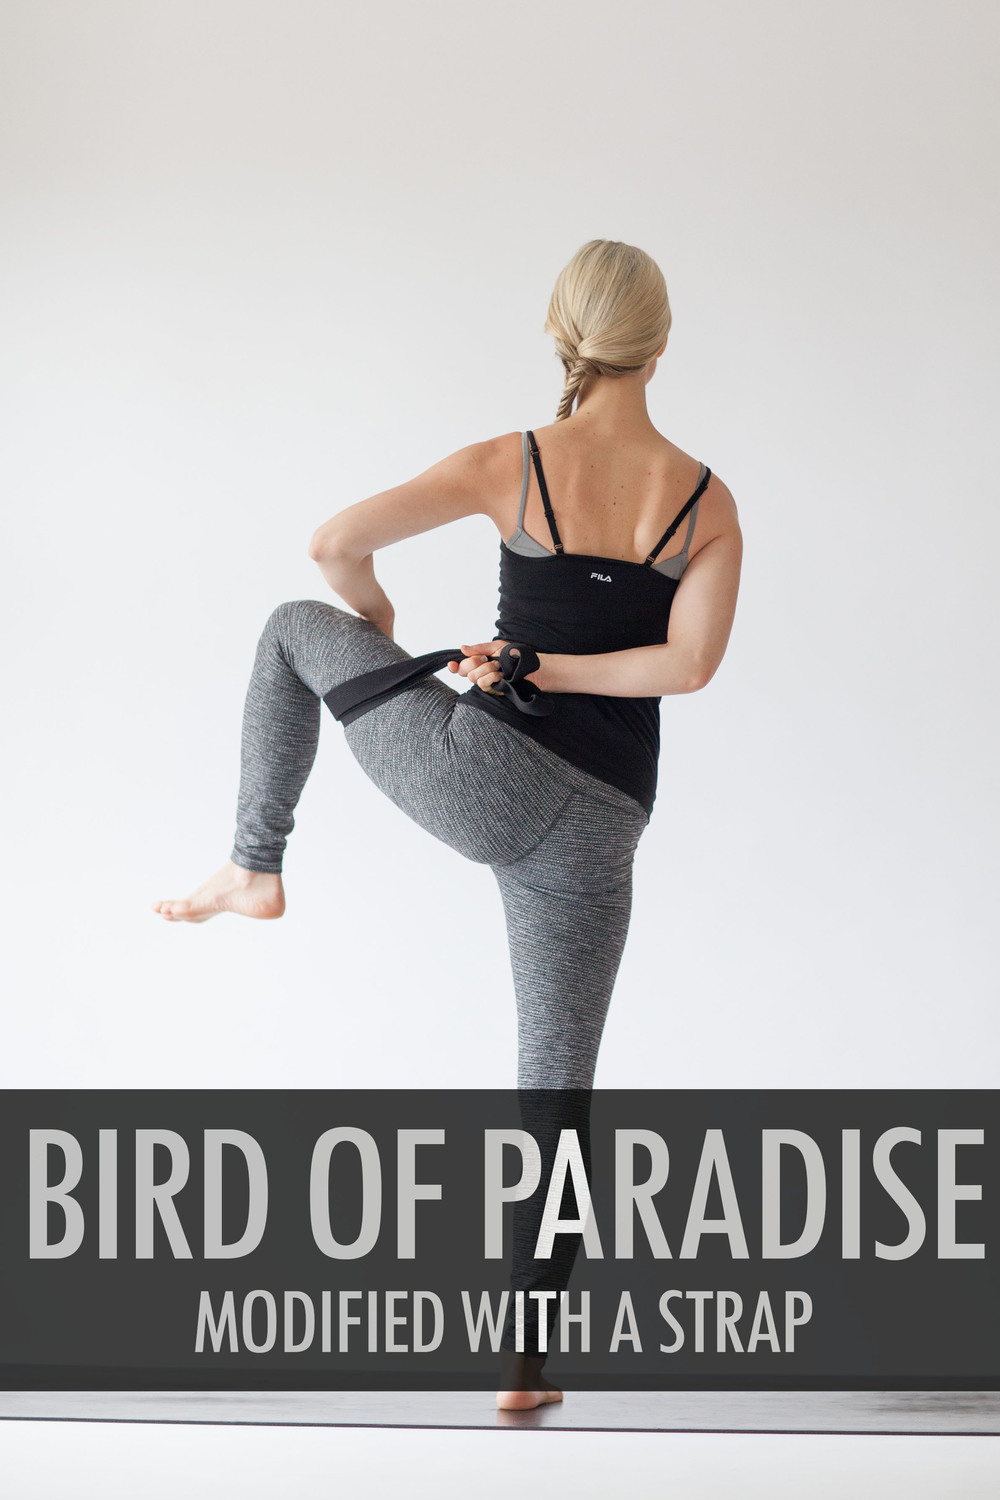 Modified Bird Of Paradise With a Strap.jpg